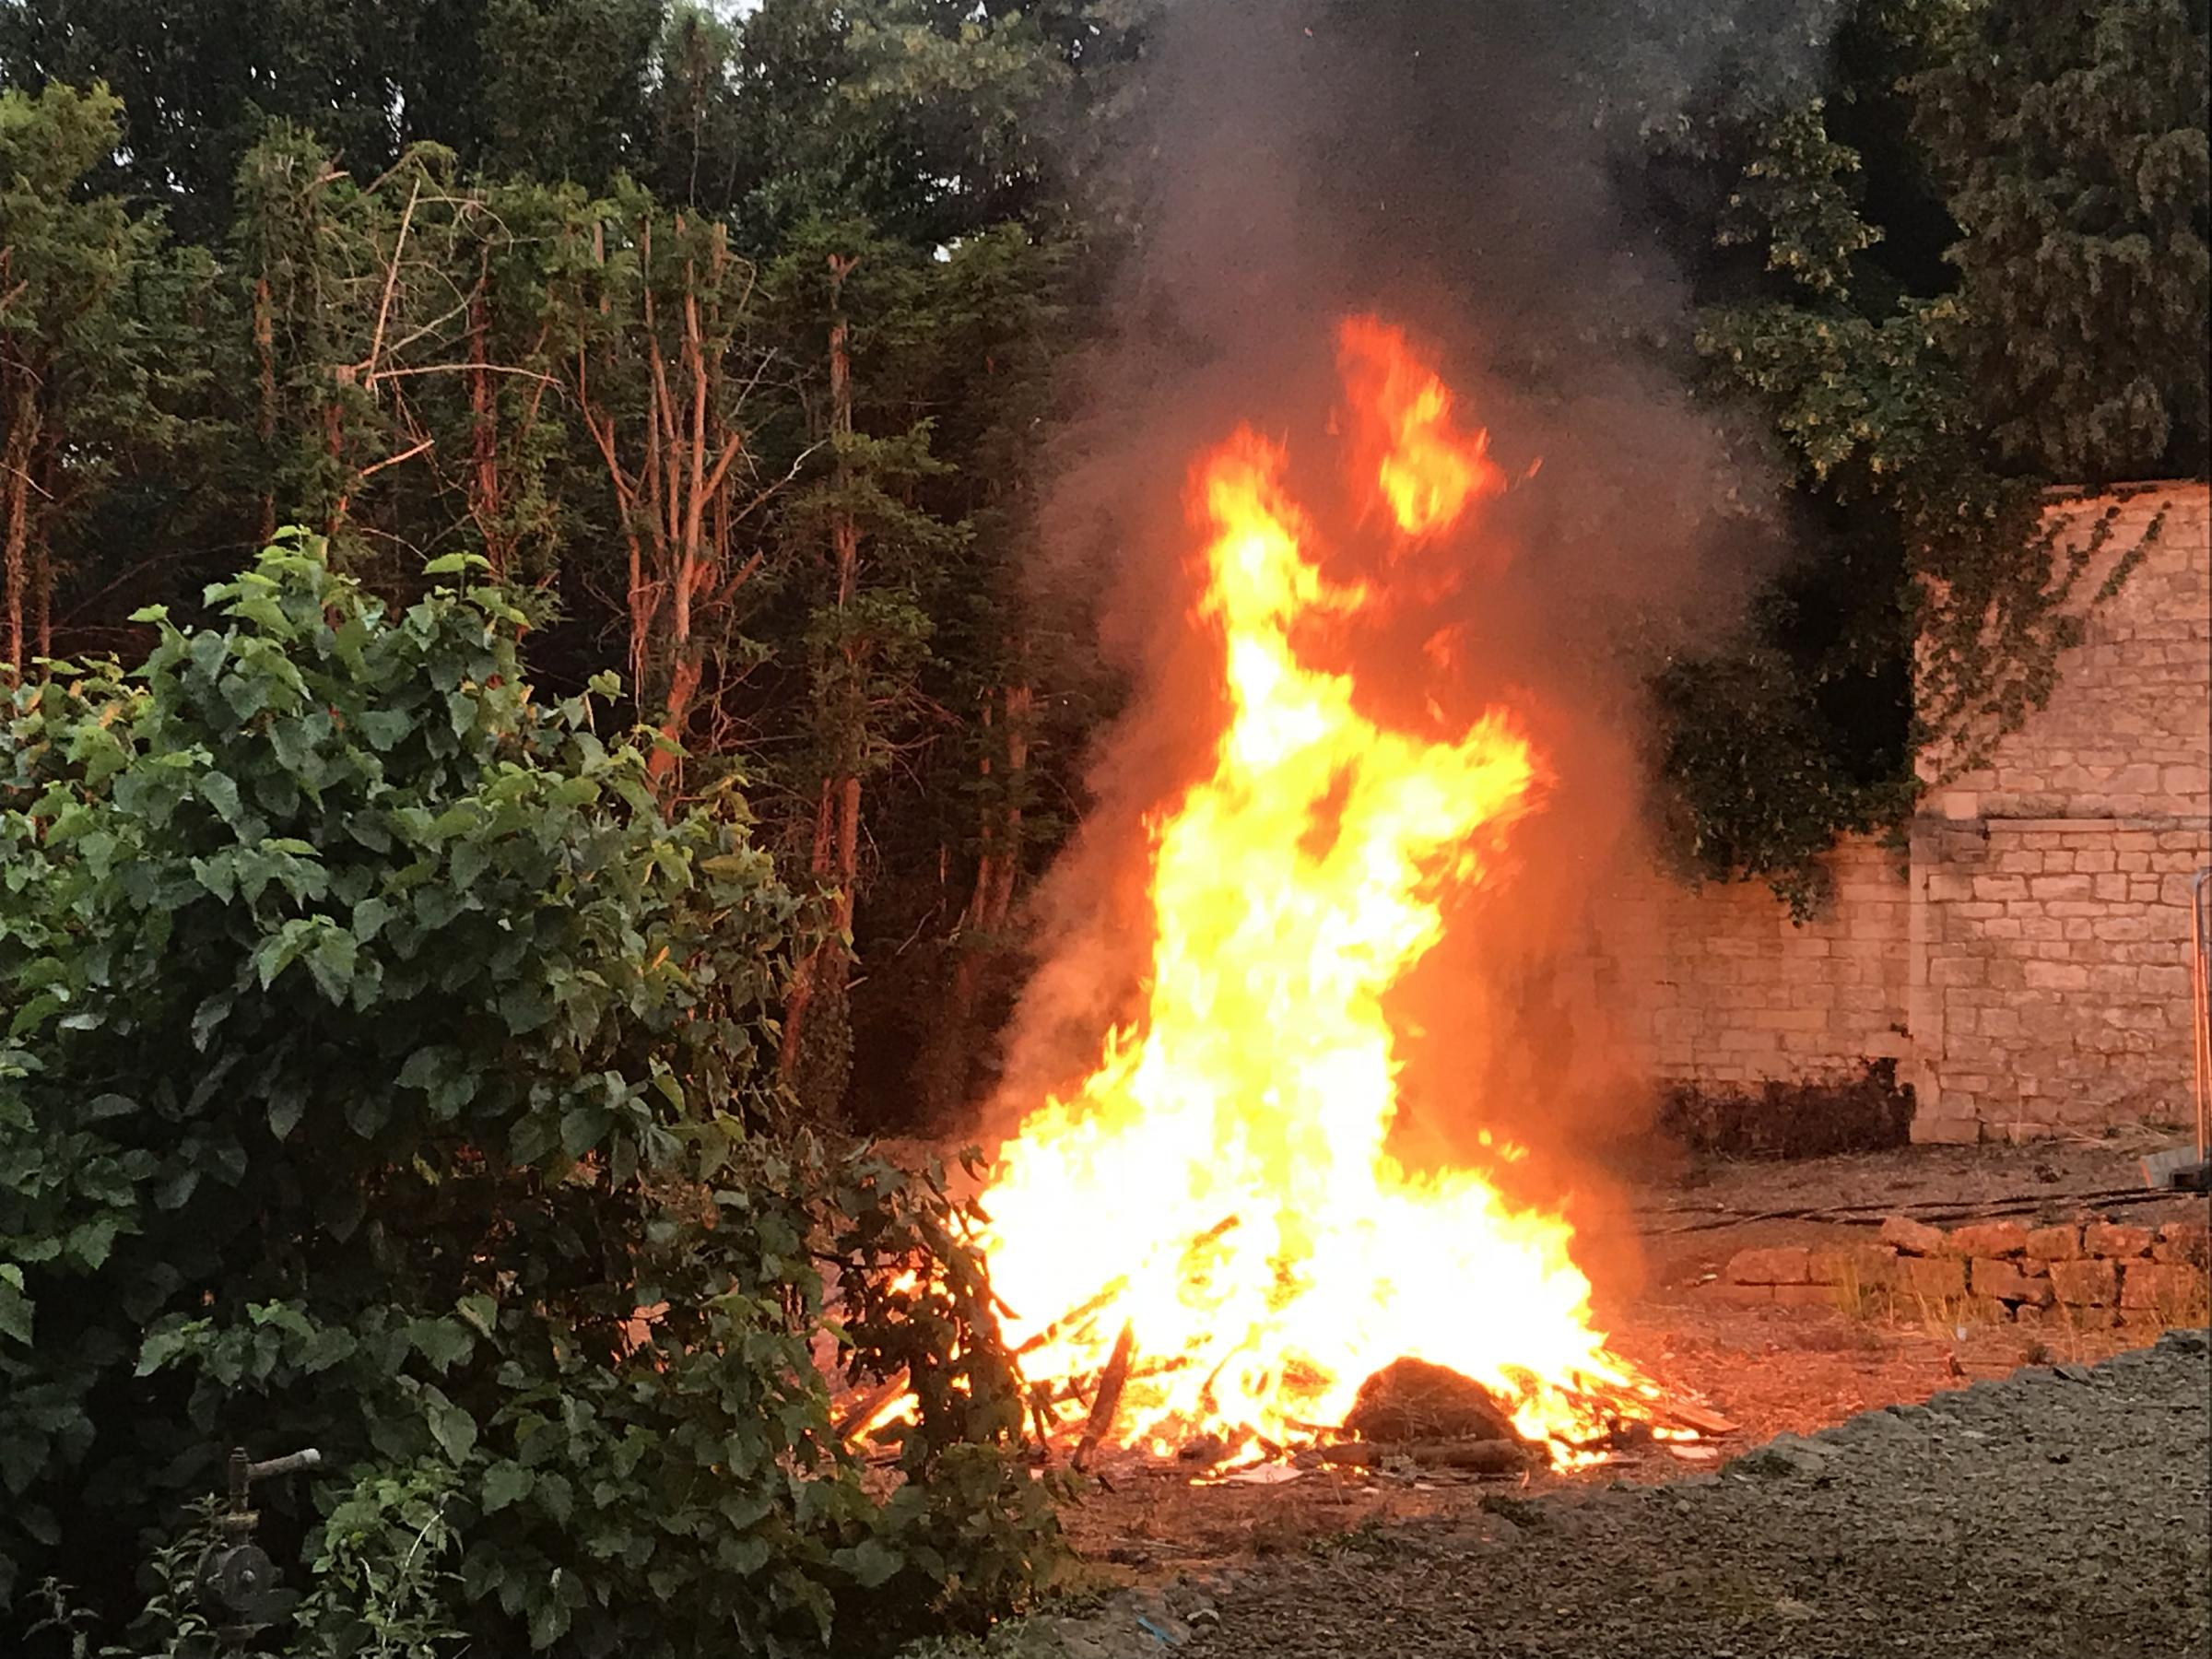 Firefighters tackle the out-of-control bonfire at the Old Convent in Stroud